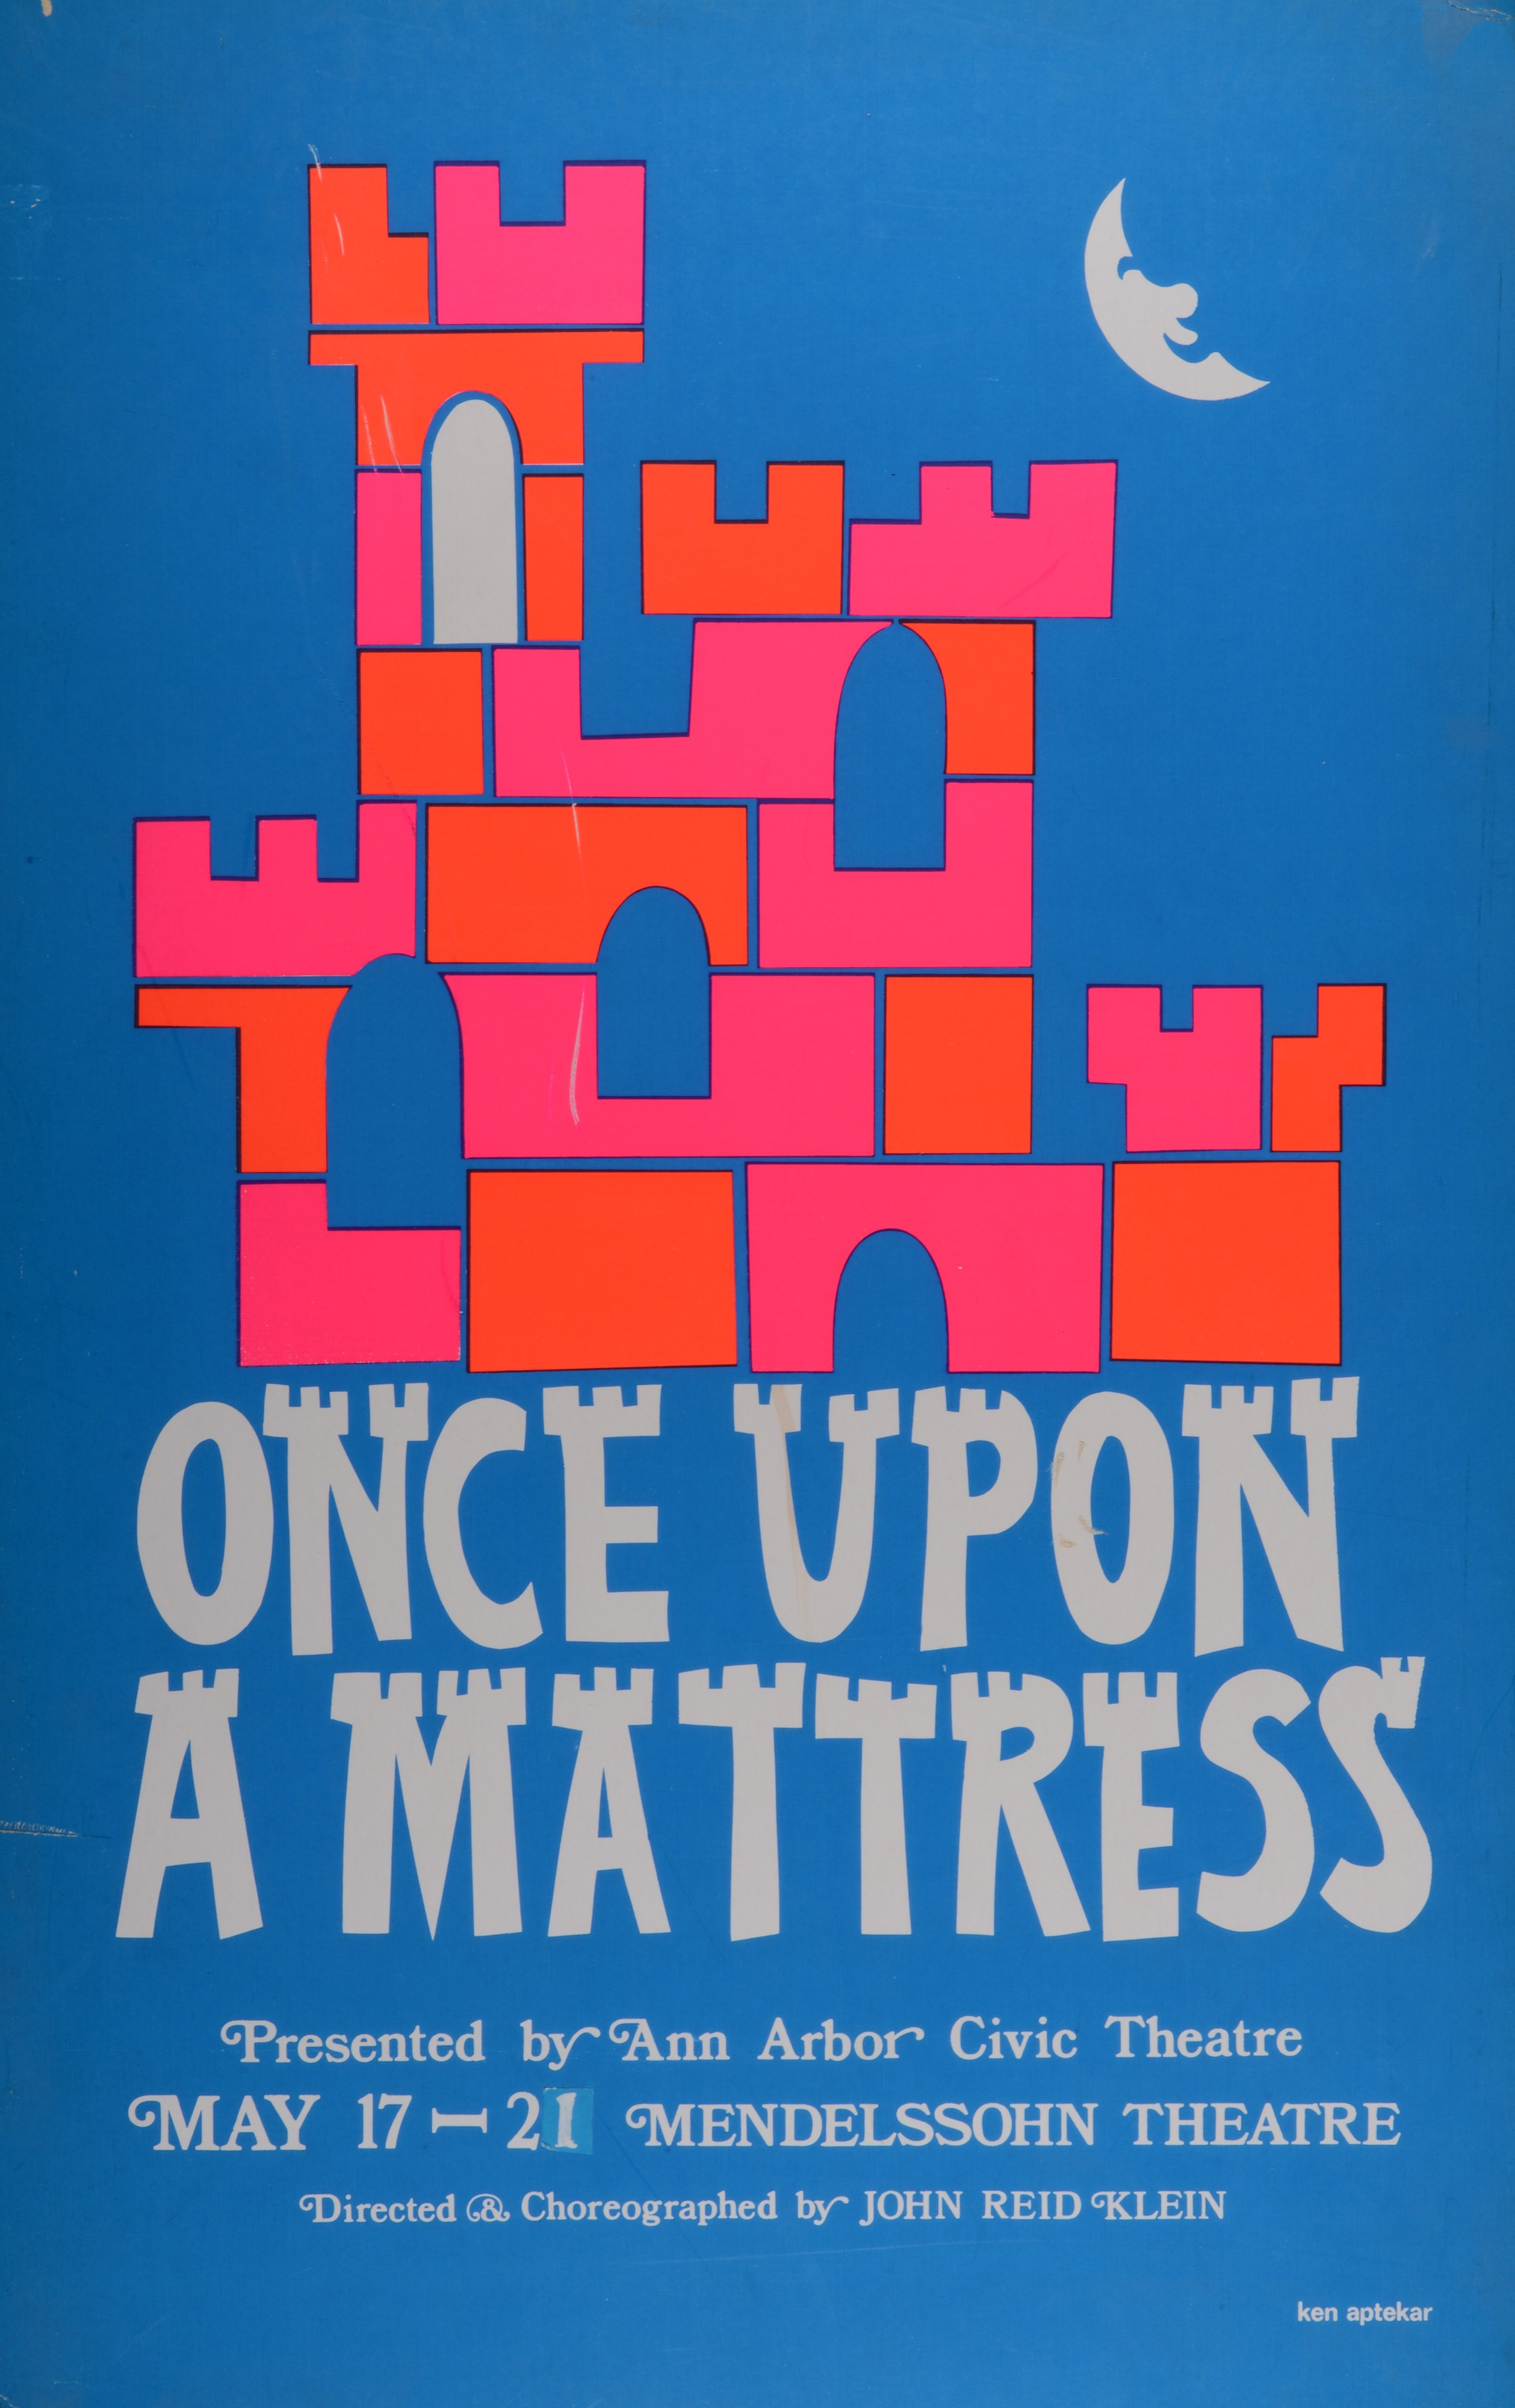 ann arbor civic theatre poster once upon a mattress ann arbor